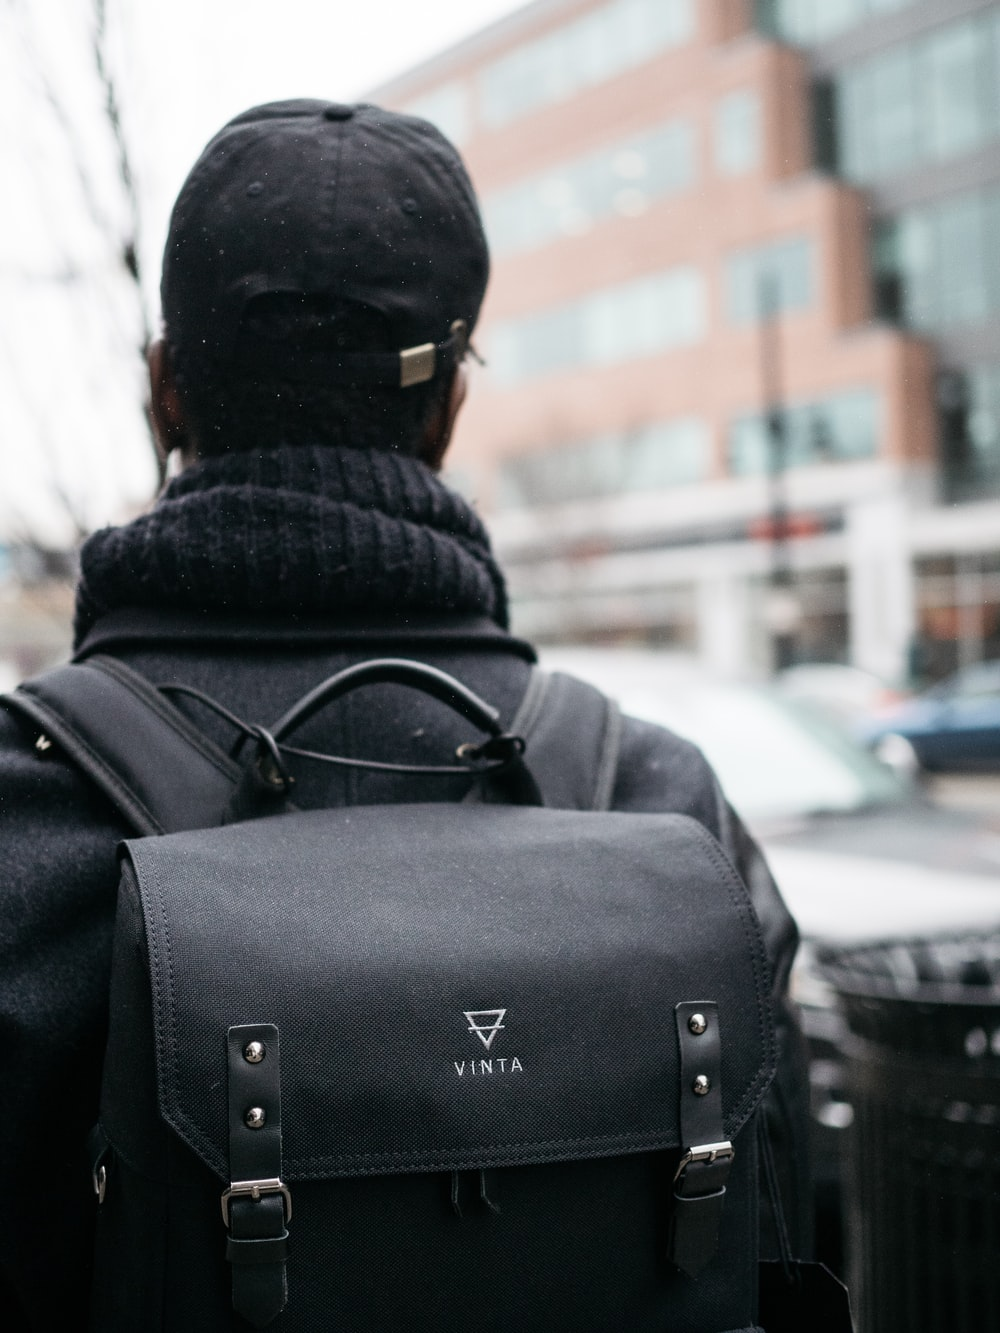 man wearing black top. hat, and Vinta backpack selective focus photography